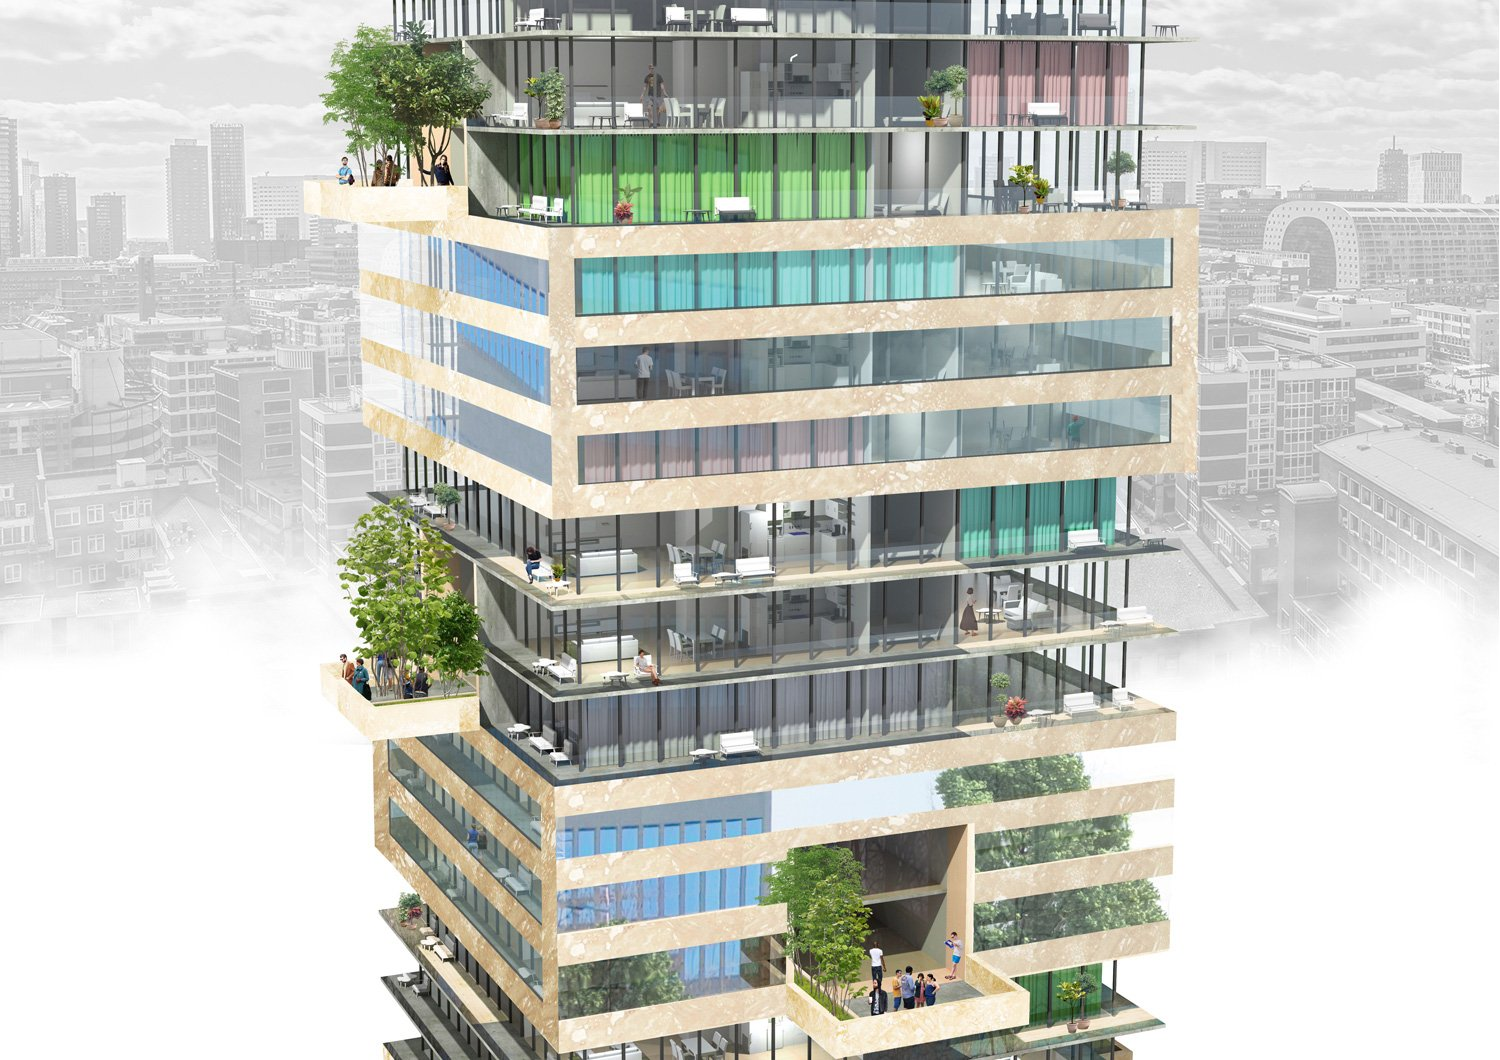 rendering: An image of the buidling at bird's eye level